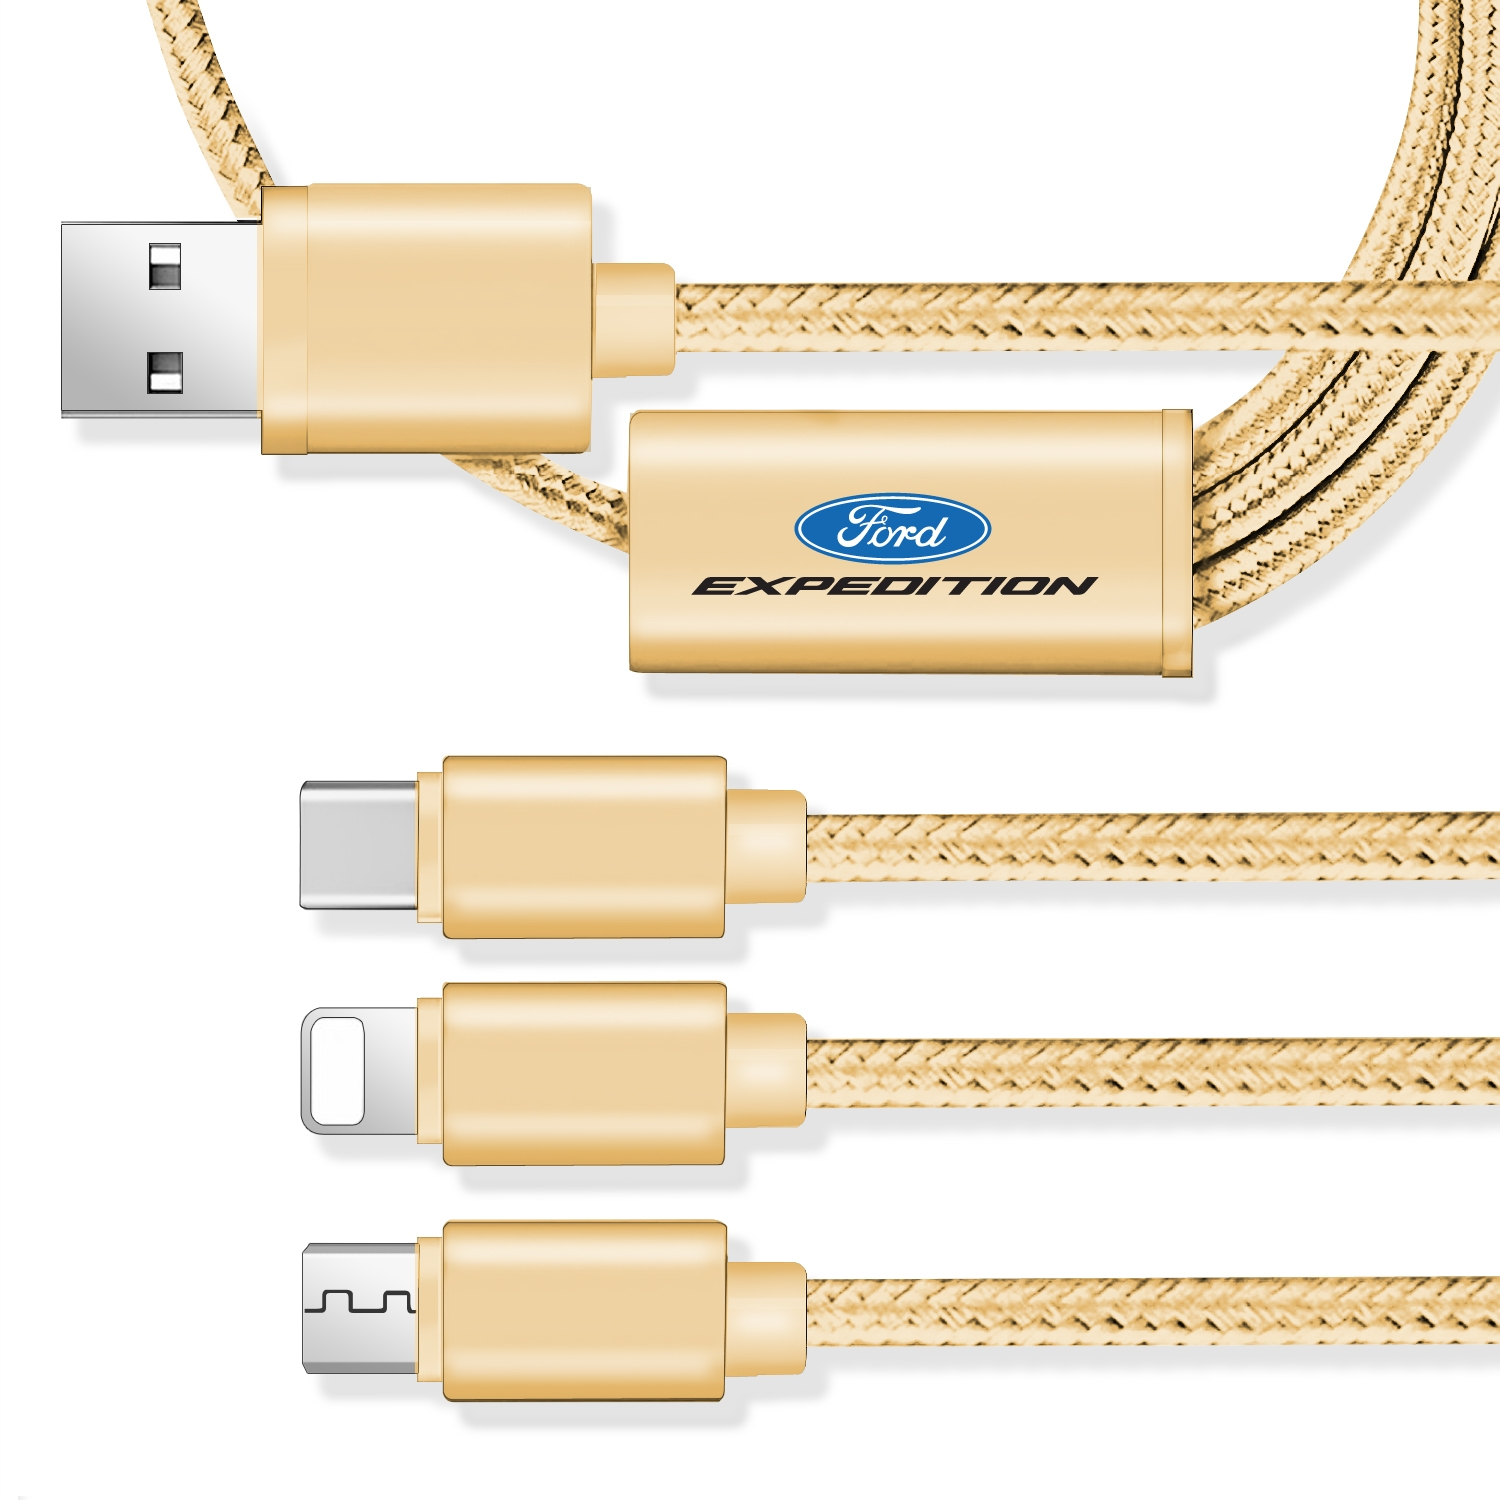 Ford Expedition 3 in 1 Golden 4 Ft Premium Multi Charging Cord USB Cable